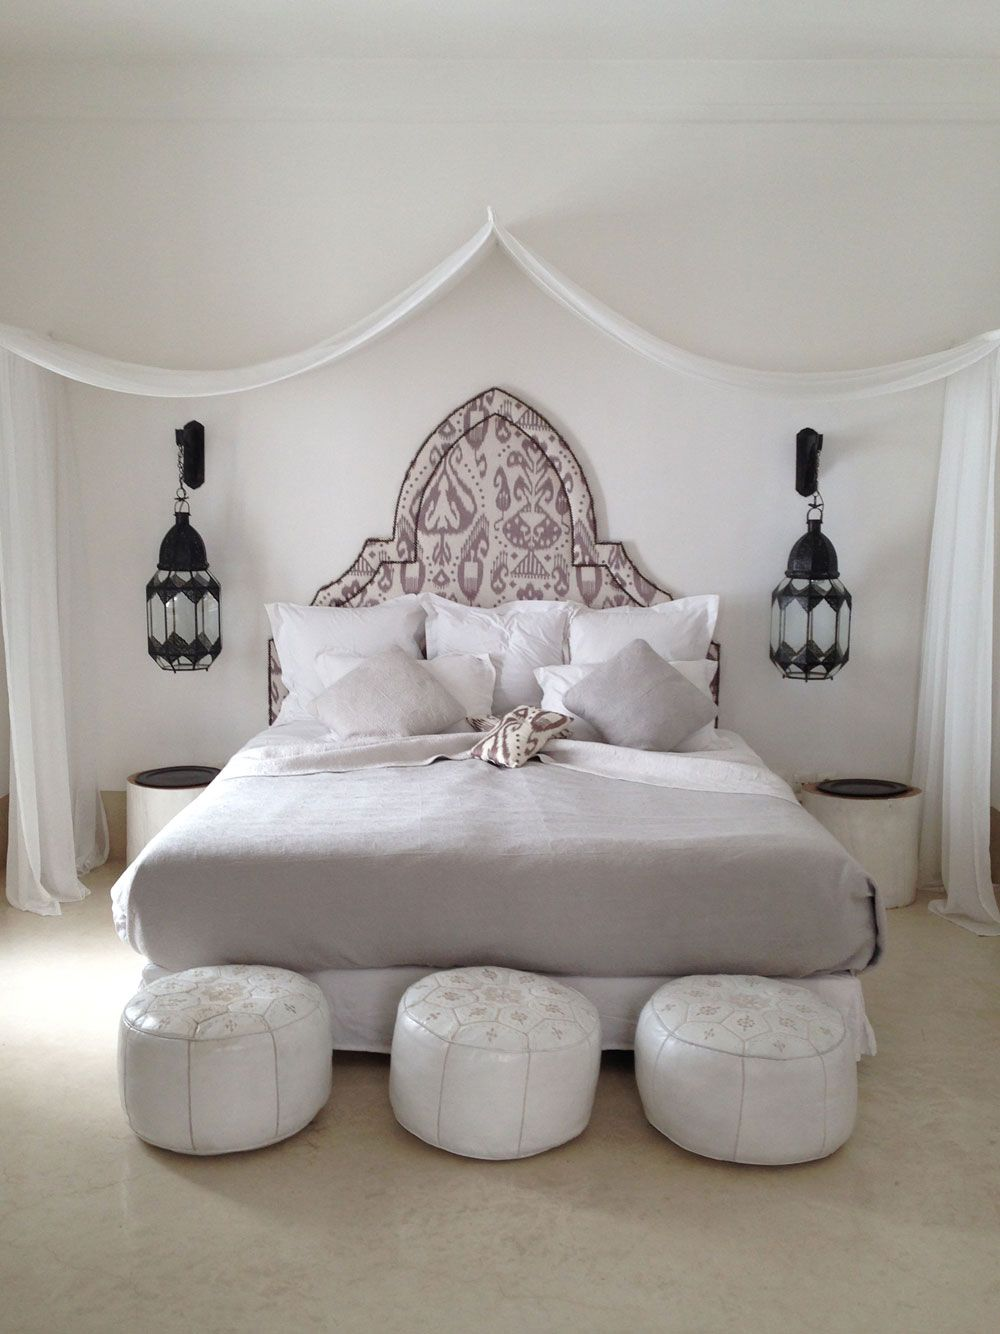 Marrakech This Kind Of Style For Bedroom With Macrame Plant Hangers